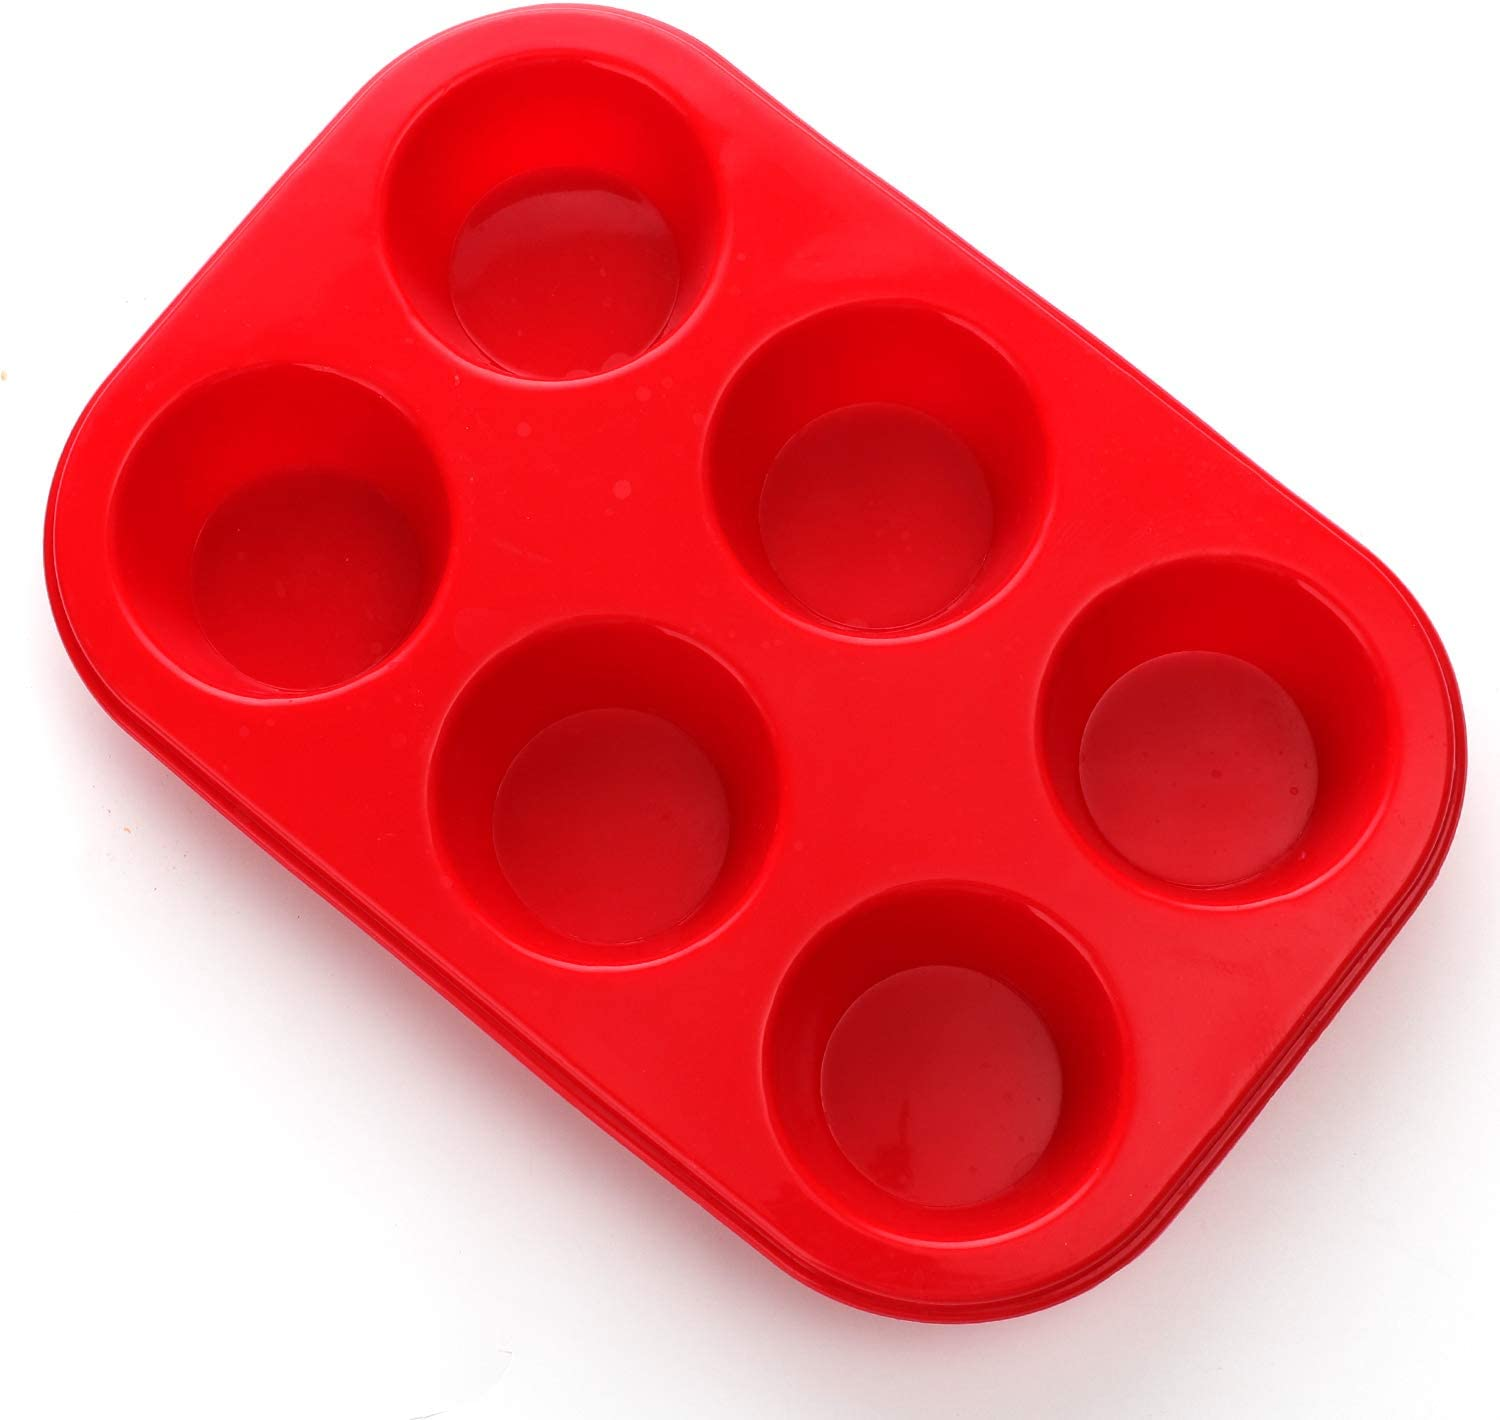 Silicone Muffin Pan, European LFGB Silicone Cupcake Baking Pan, 6 Cup Muffin, Non-Stick Muffin Tray, LFGB Approved Egg Muffin Pan, Food Grade Molds Red